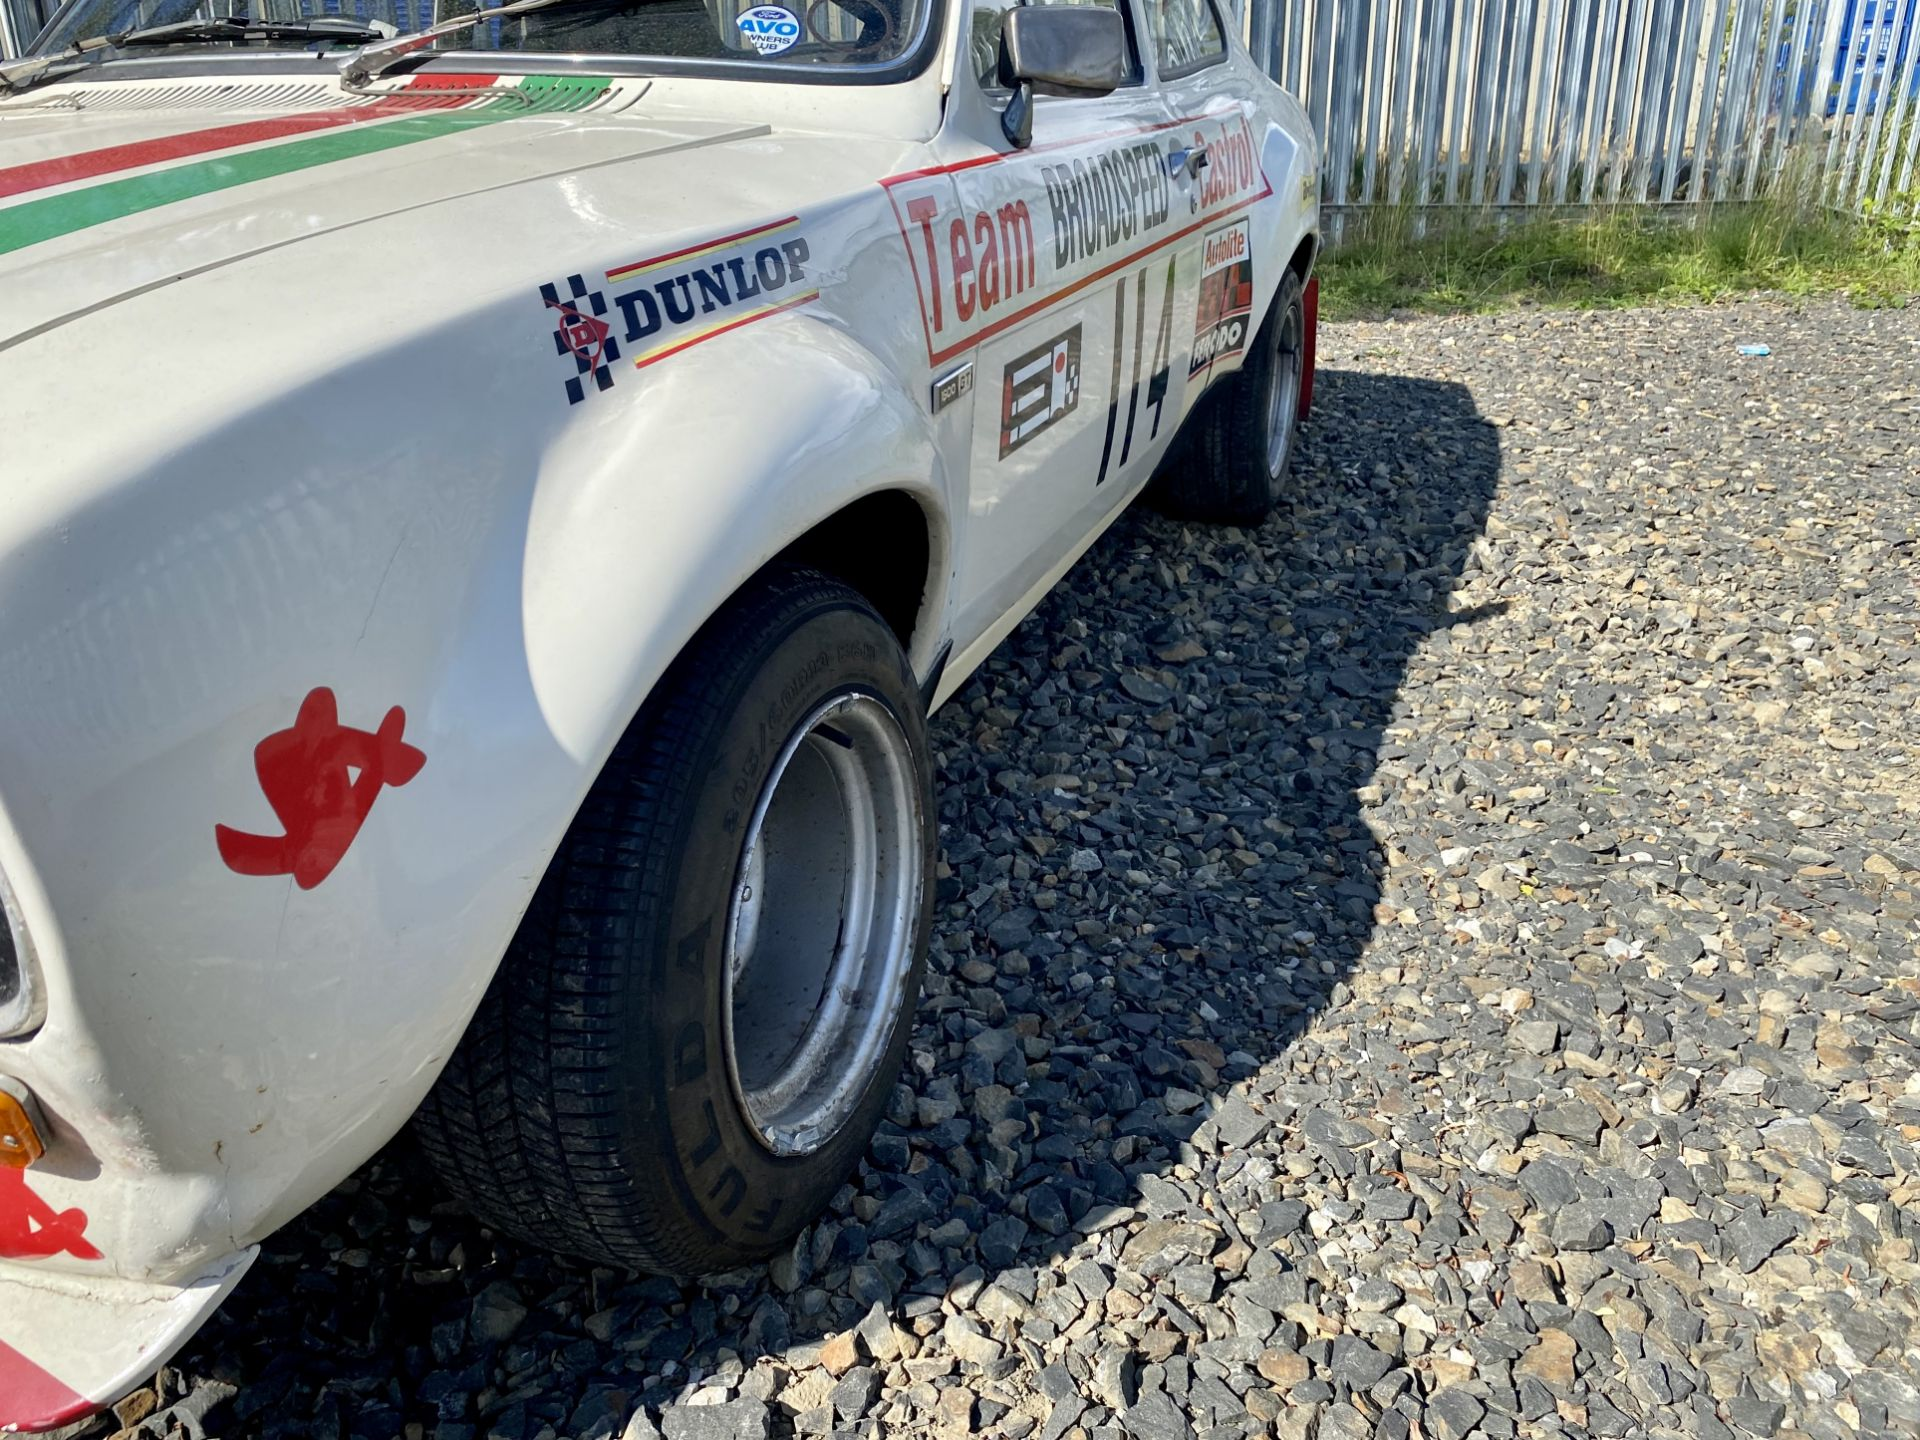 Ford Escort Mexico - Image 51 of 51